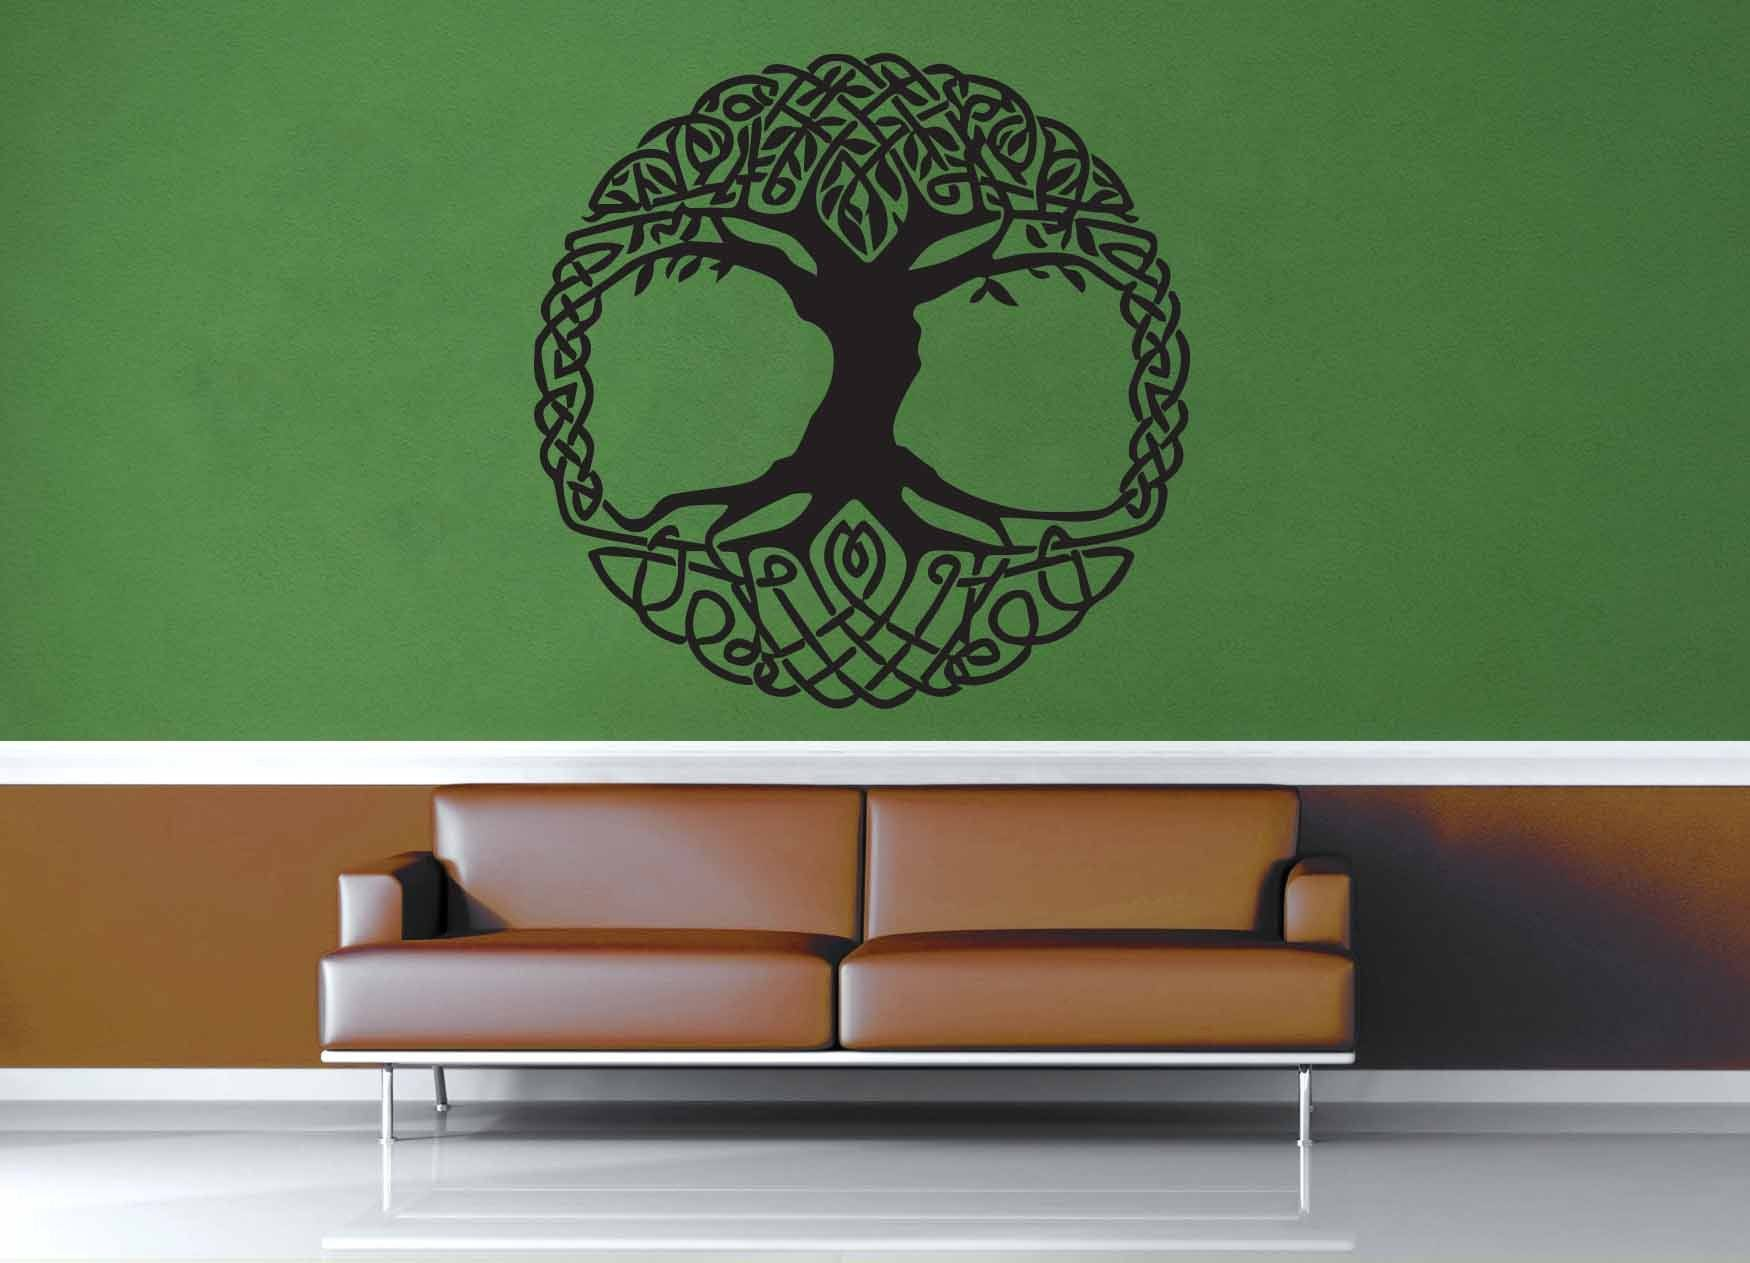 Yggdrasil - Norse Mythology - Celtic Knot - Wall Decal - No 2